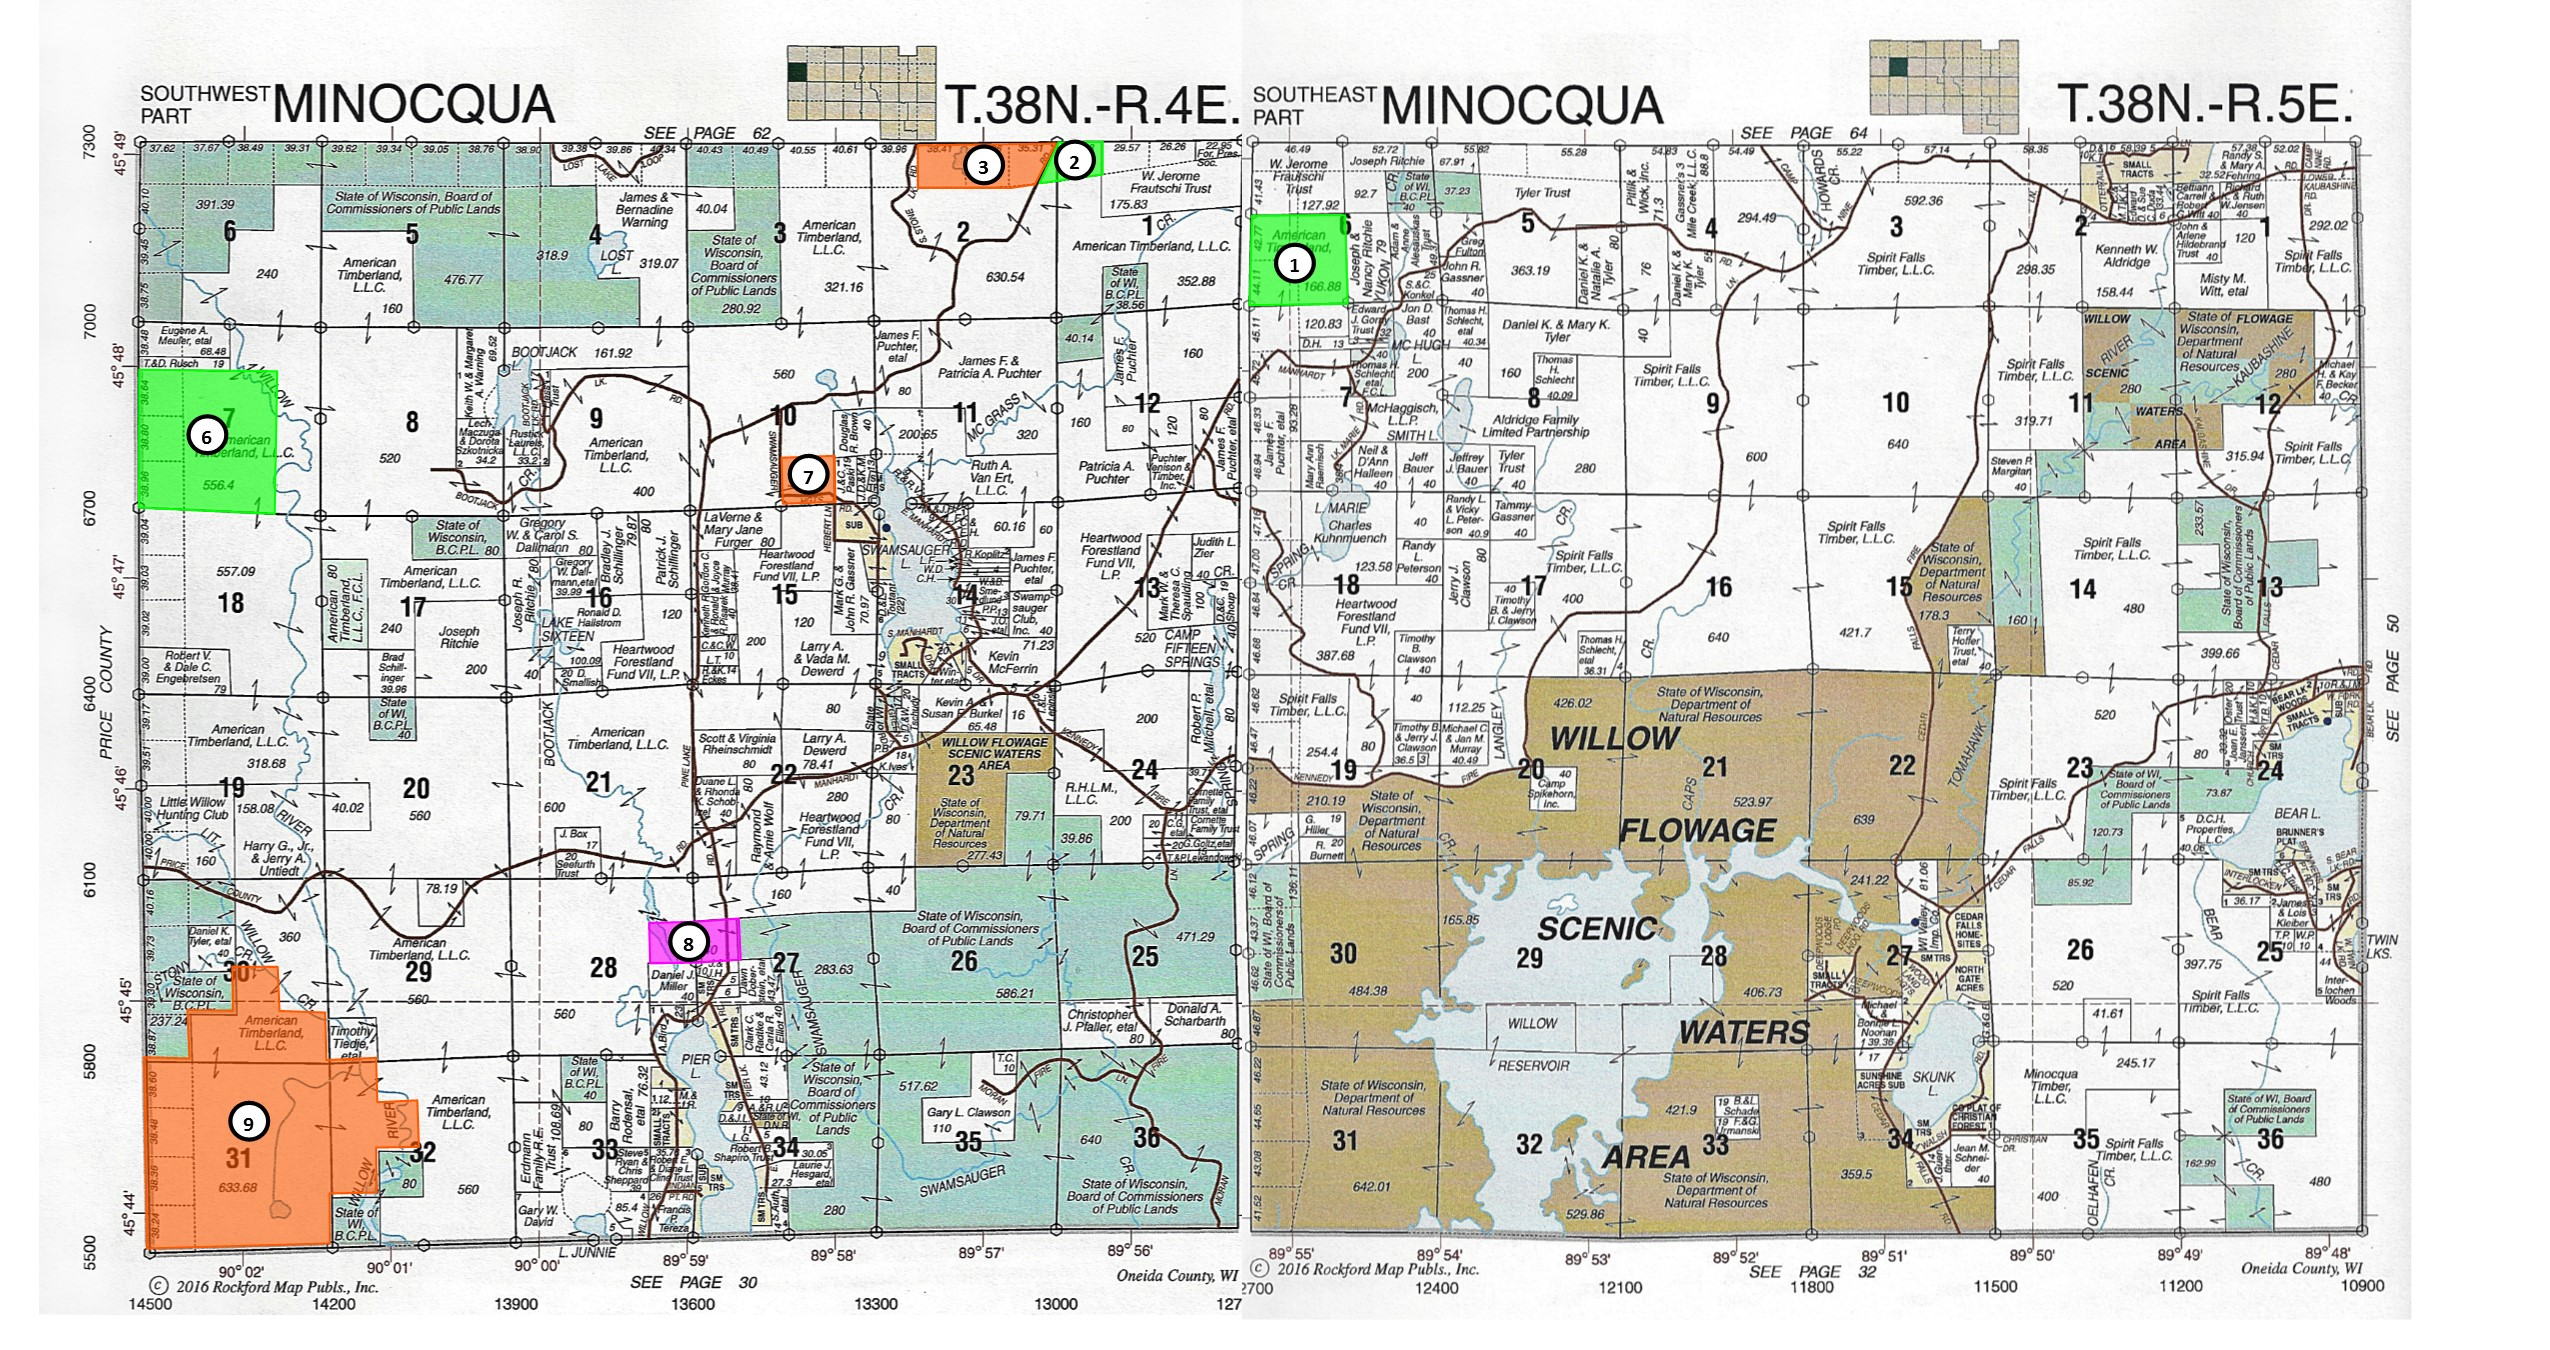 Looking for some serious acreage in the Minocqua area?